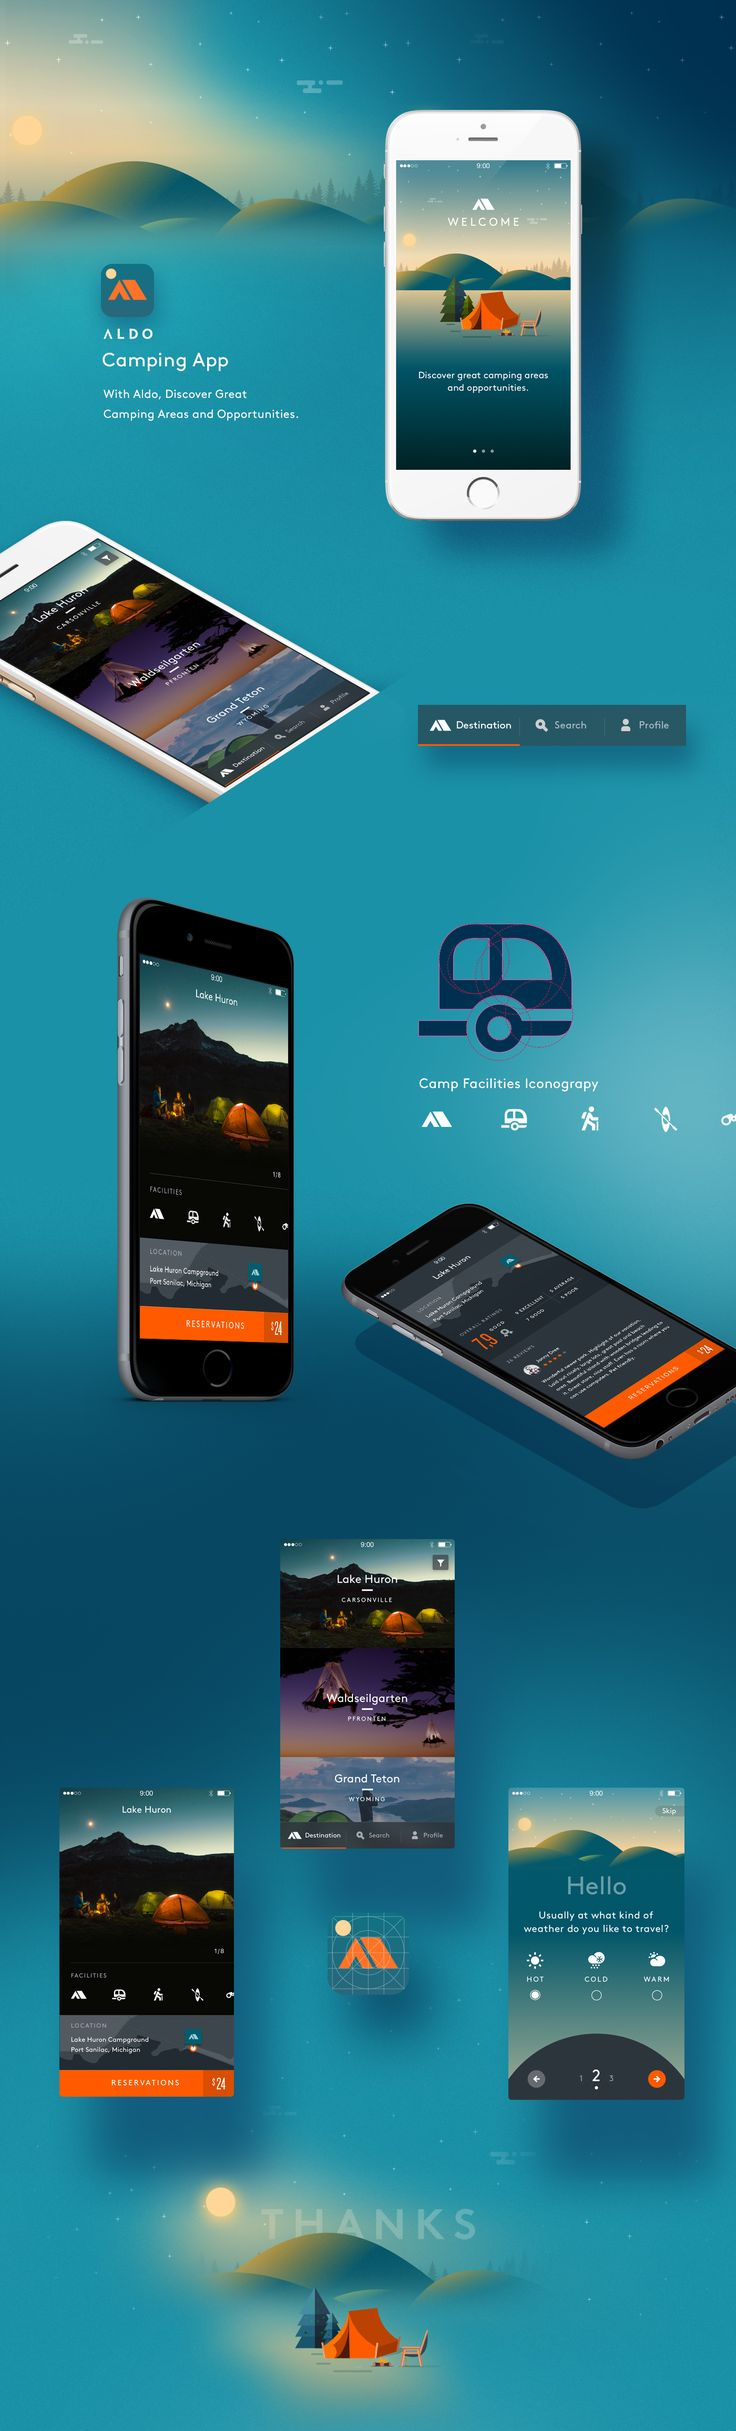 """Check out this @Behance project: """"Camping App"""" https://www.behance.net/gallery/36177587/Camping-App"""